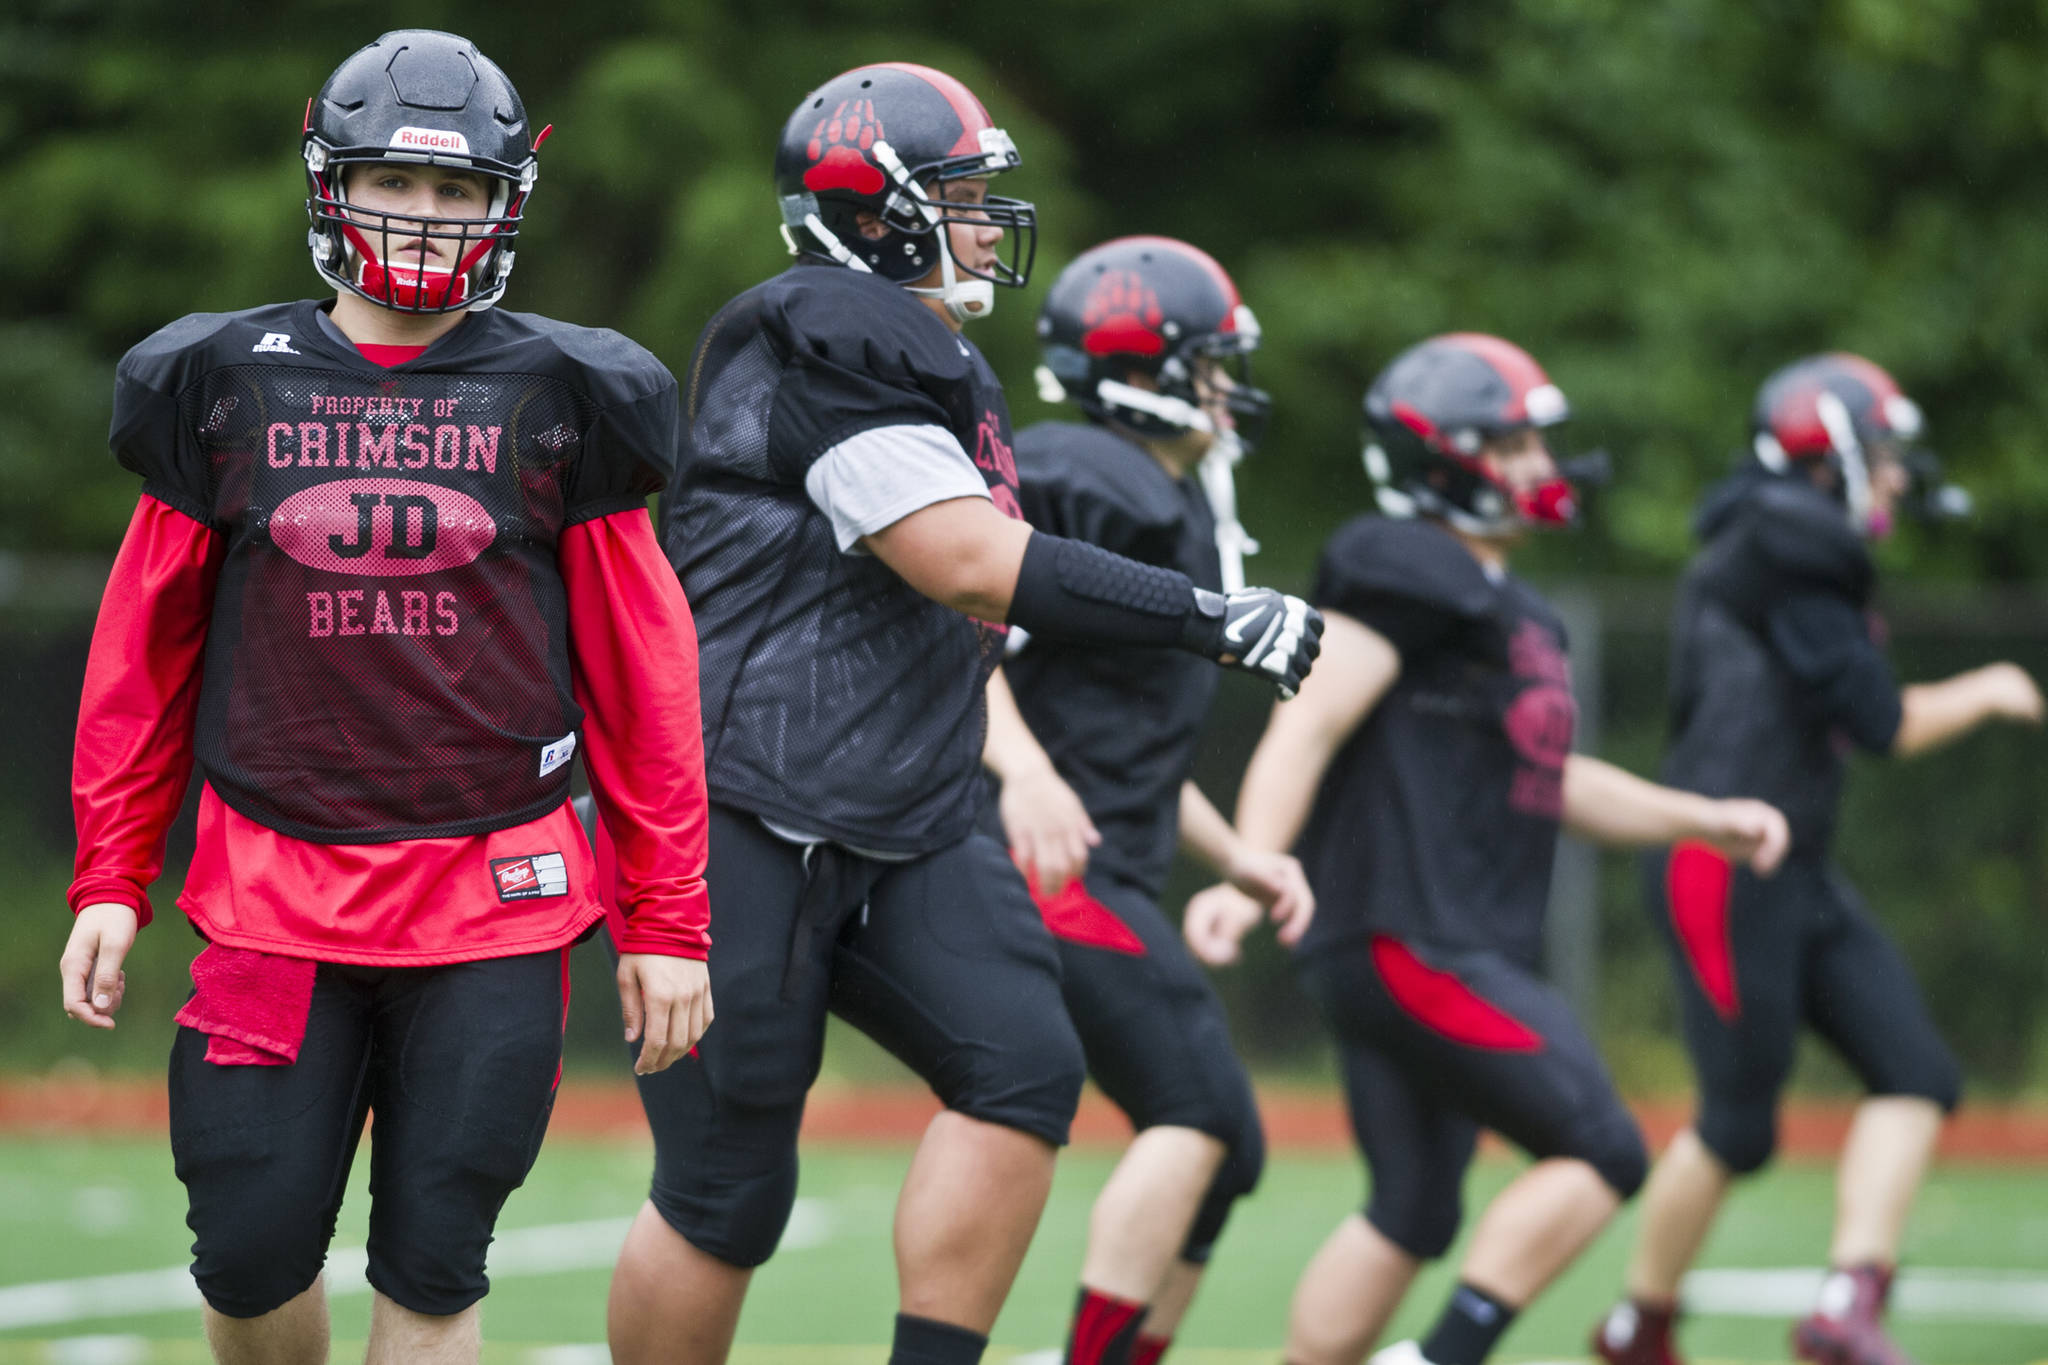 Hunter Hickok leads warmup drills during Juneau-Douglas High School varsity football practice in August of 2015. Hickok was twice named Southeast Conference Defensive Player Of The Year during his time with the Crimson Bears from 2012-2015. (Michael Penn | Juneau Empire File)